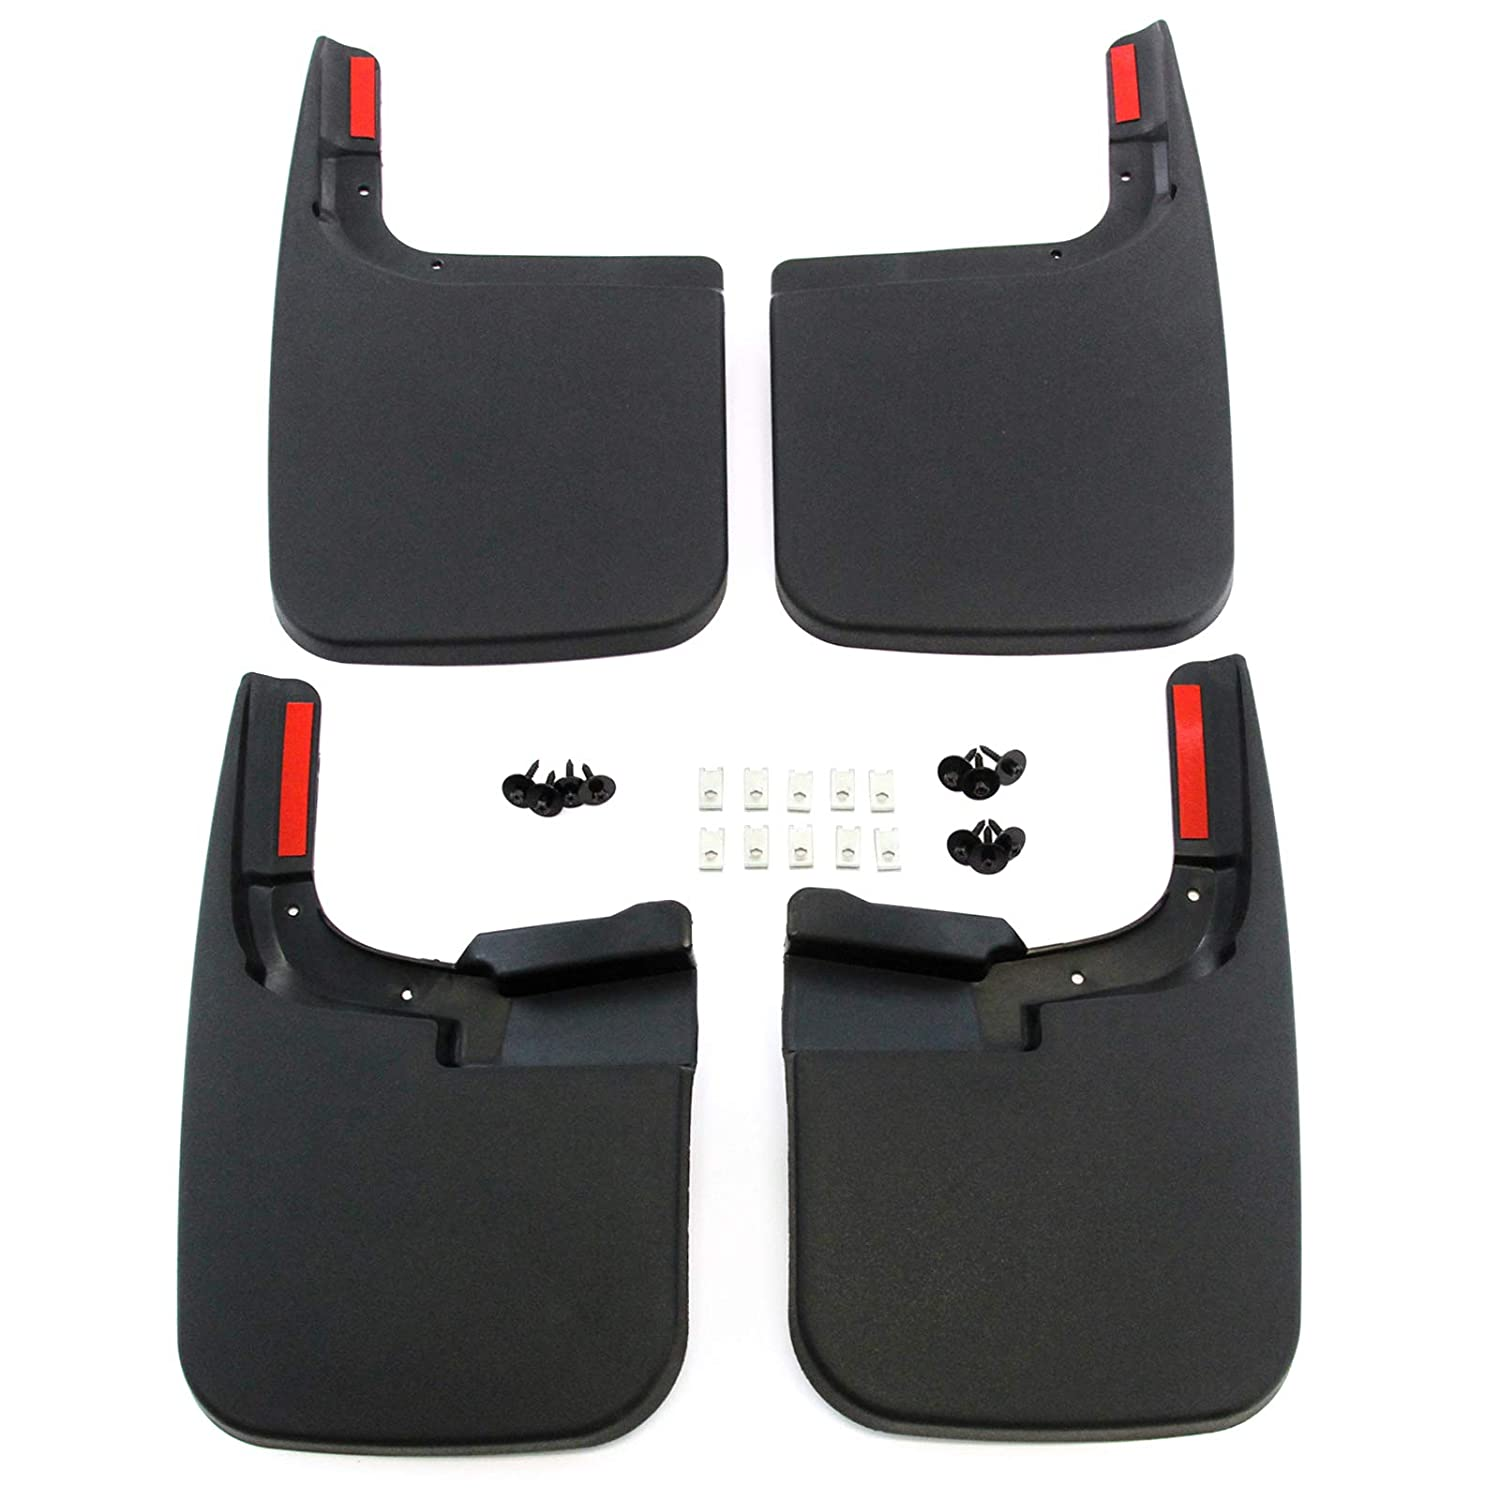 Red Hound Auto Compatible with Ford (2017-2019 F-250/F-350 Super Duty) Mud Flaps Splash Guards Front and Rear Molded 4pc Full Set (for Vehicles Without Fender Flares)